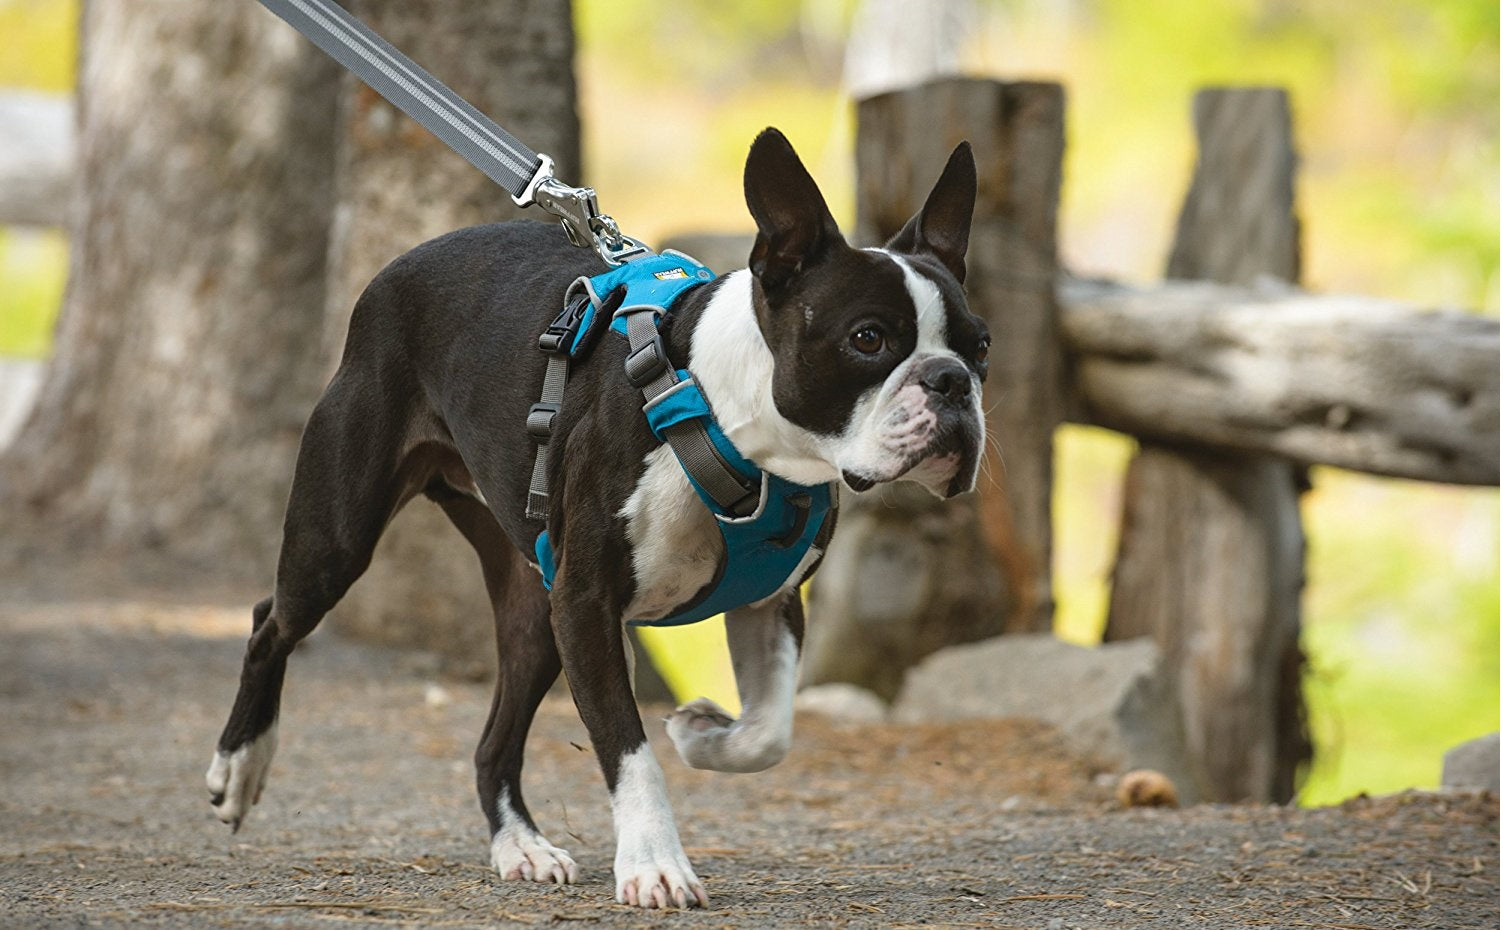 Dog Harnesses | Leashes & Collars too!